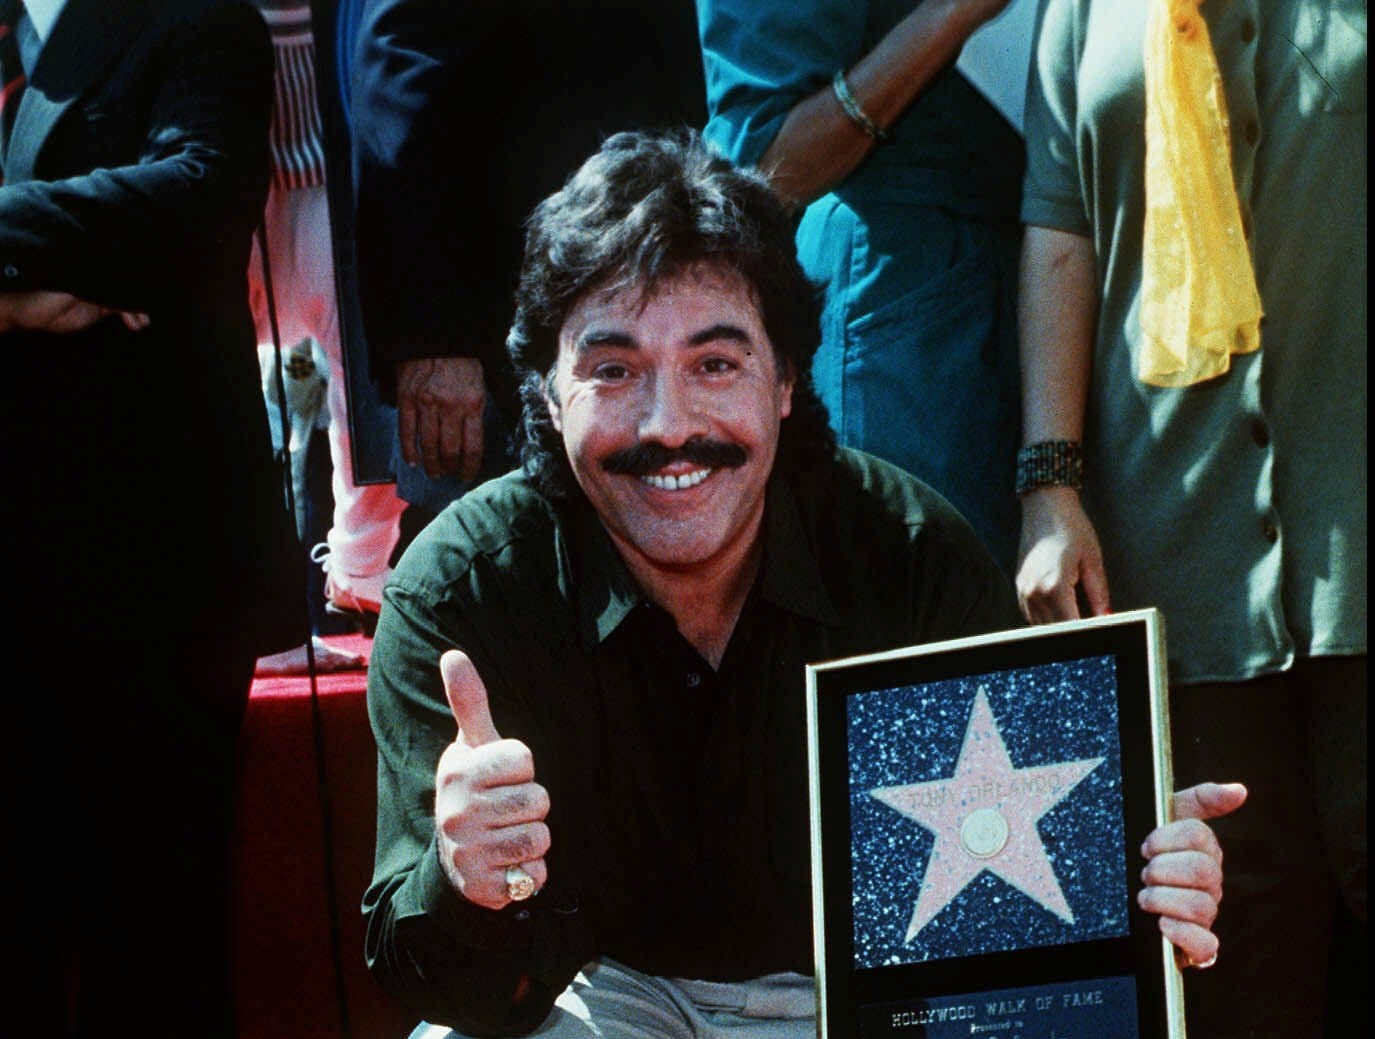 Tony Orlando gets a star on the Hollywood Walk of Fame on March 21, 1990.